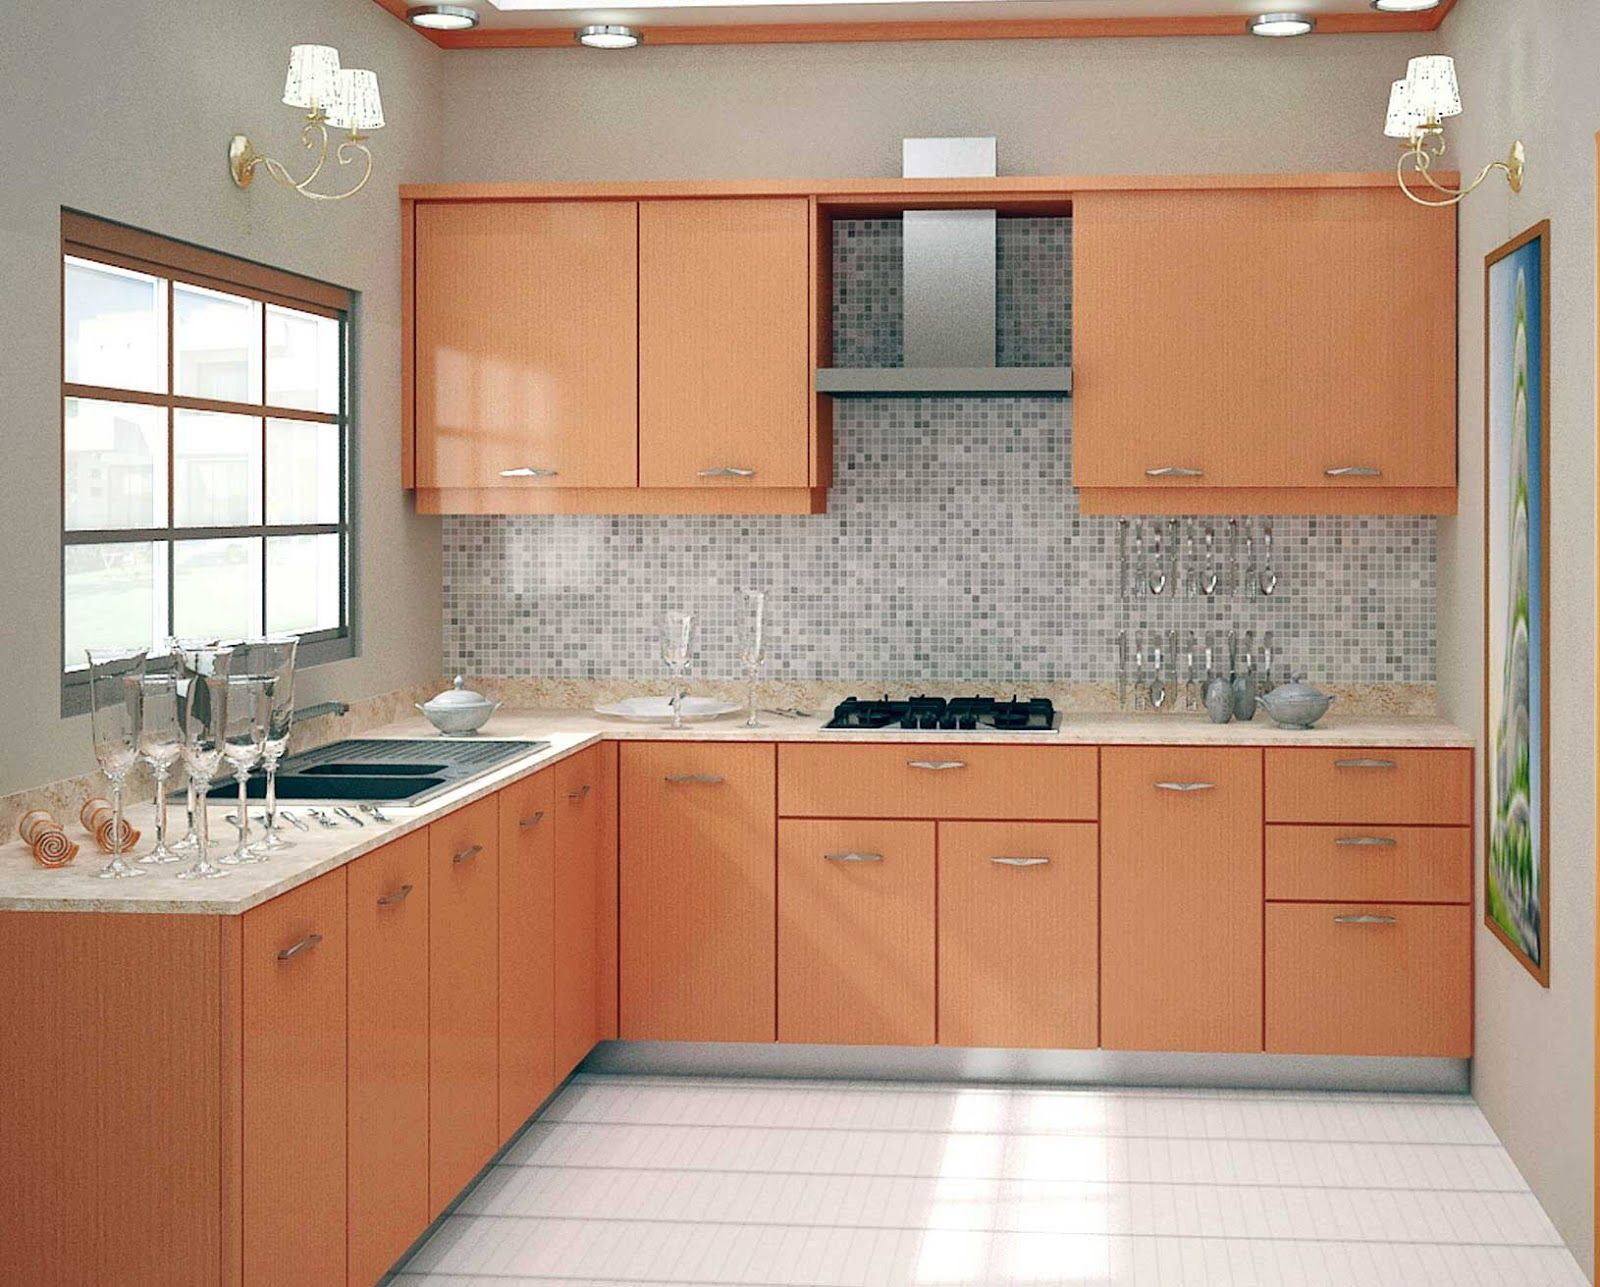 L shaped kitchen counter decor click to find out more